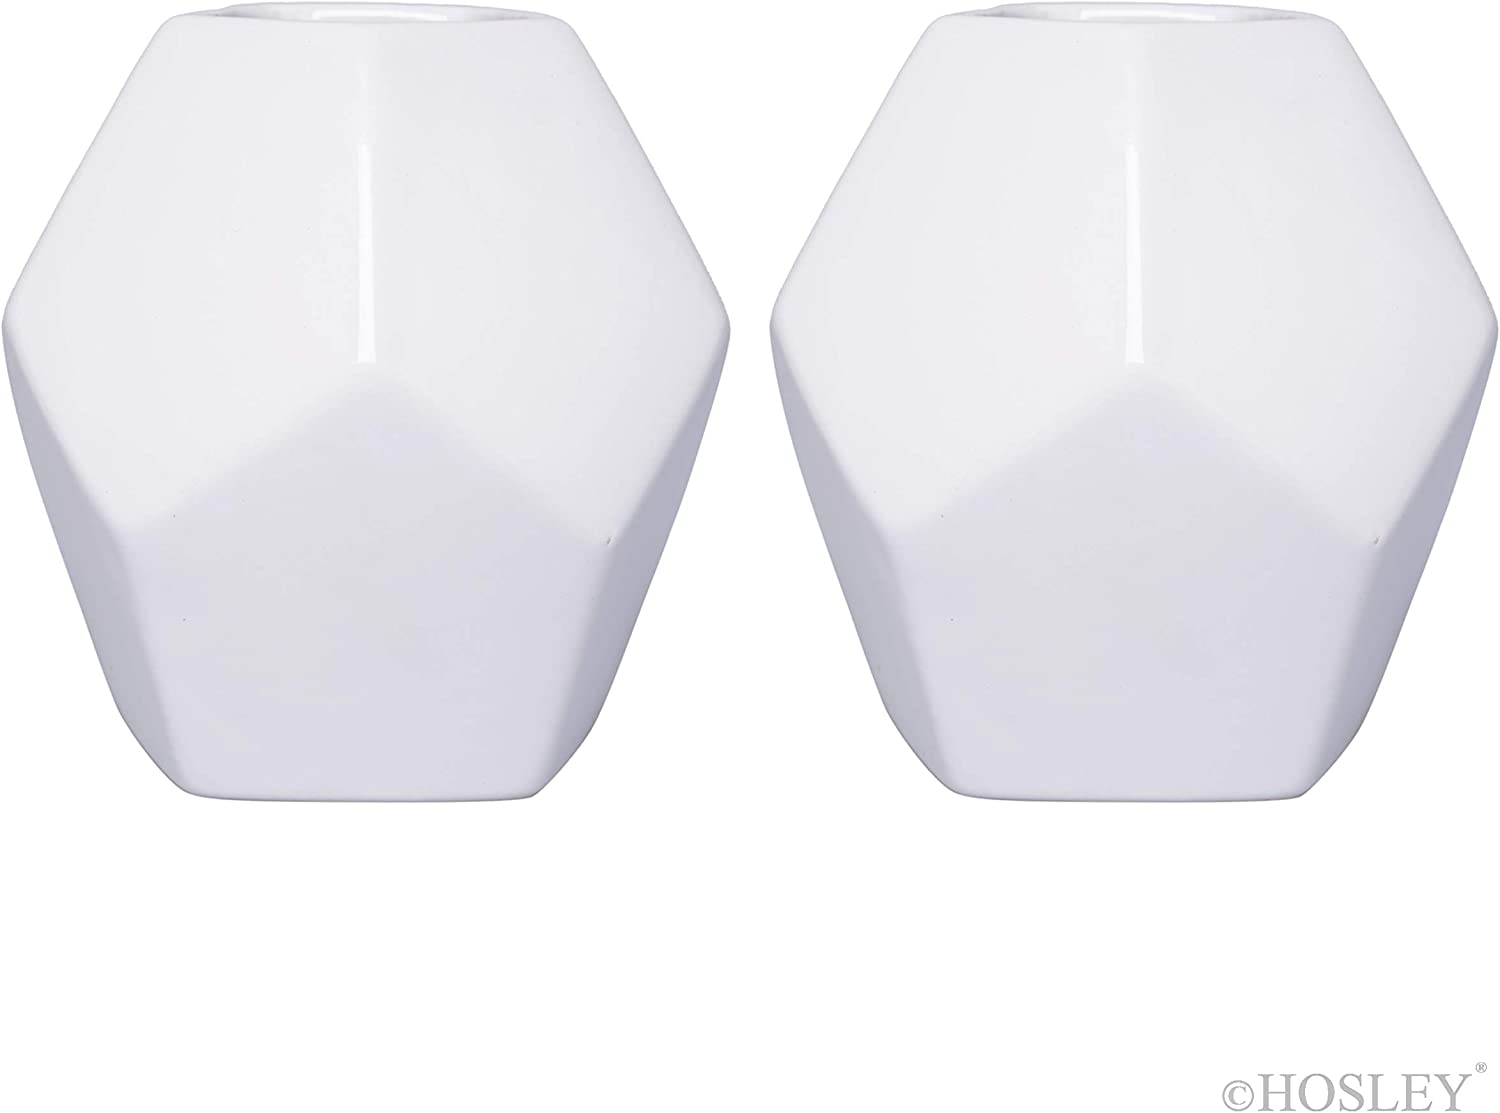 Hosley Set of 2 Geometric White Ceramic Vase 4.9 Inch High. Ideal Gift for Wedding Bridal or Party